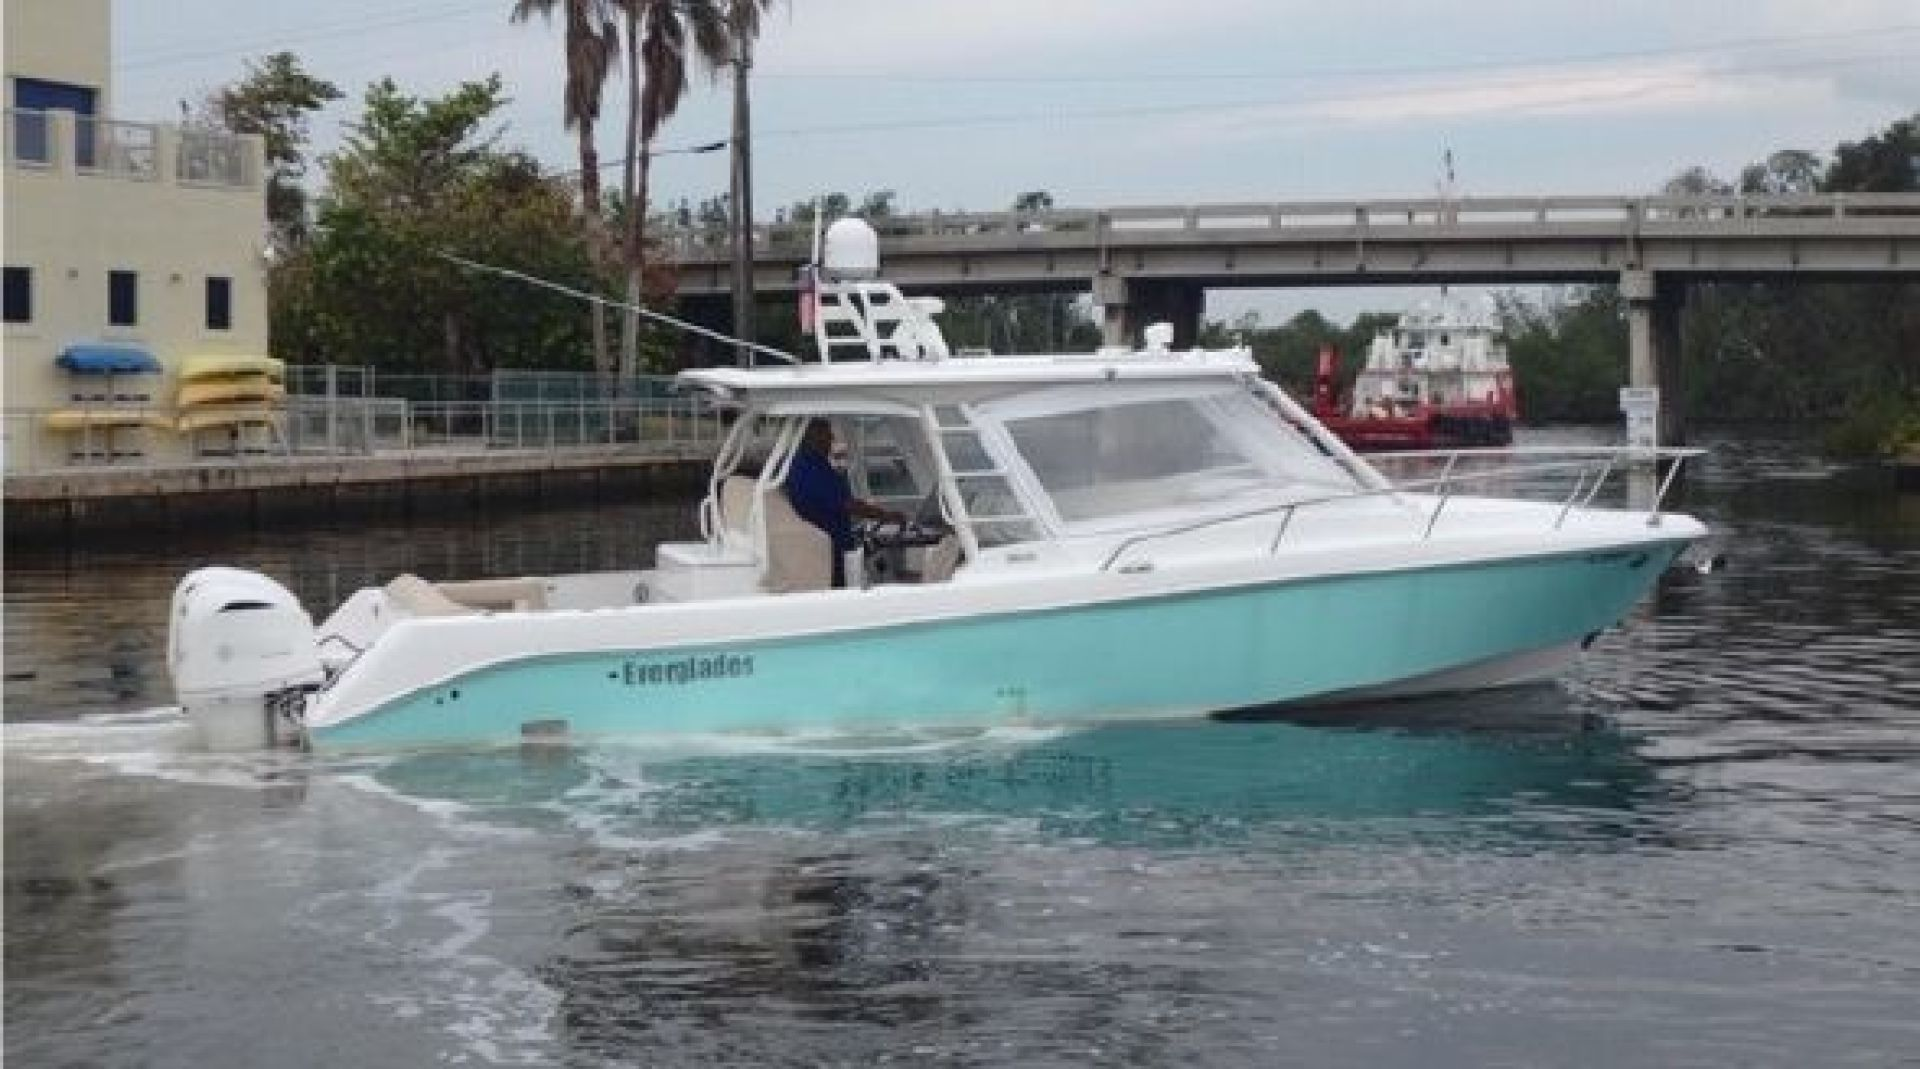 36' Everglades 2017 360LXC Best Deal for a Boat